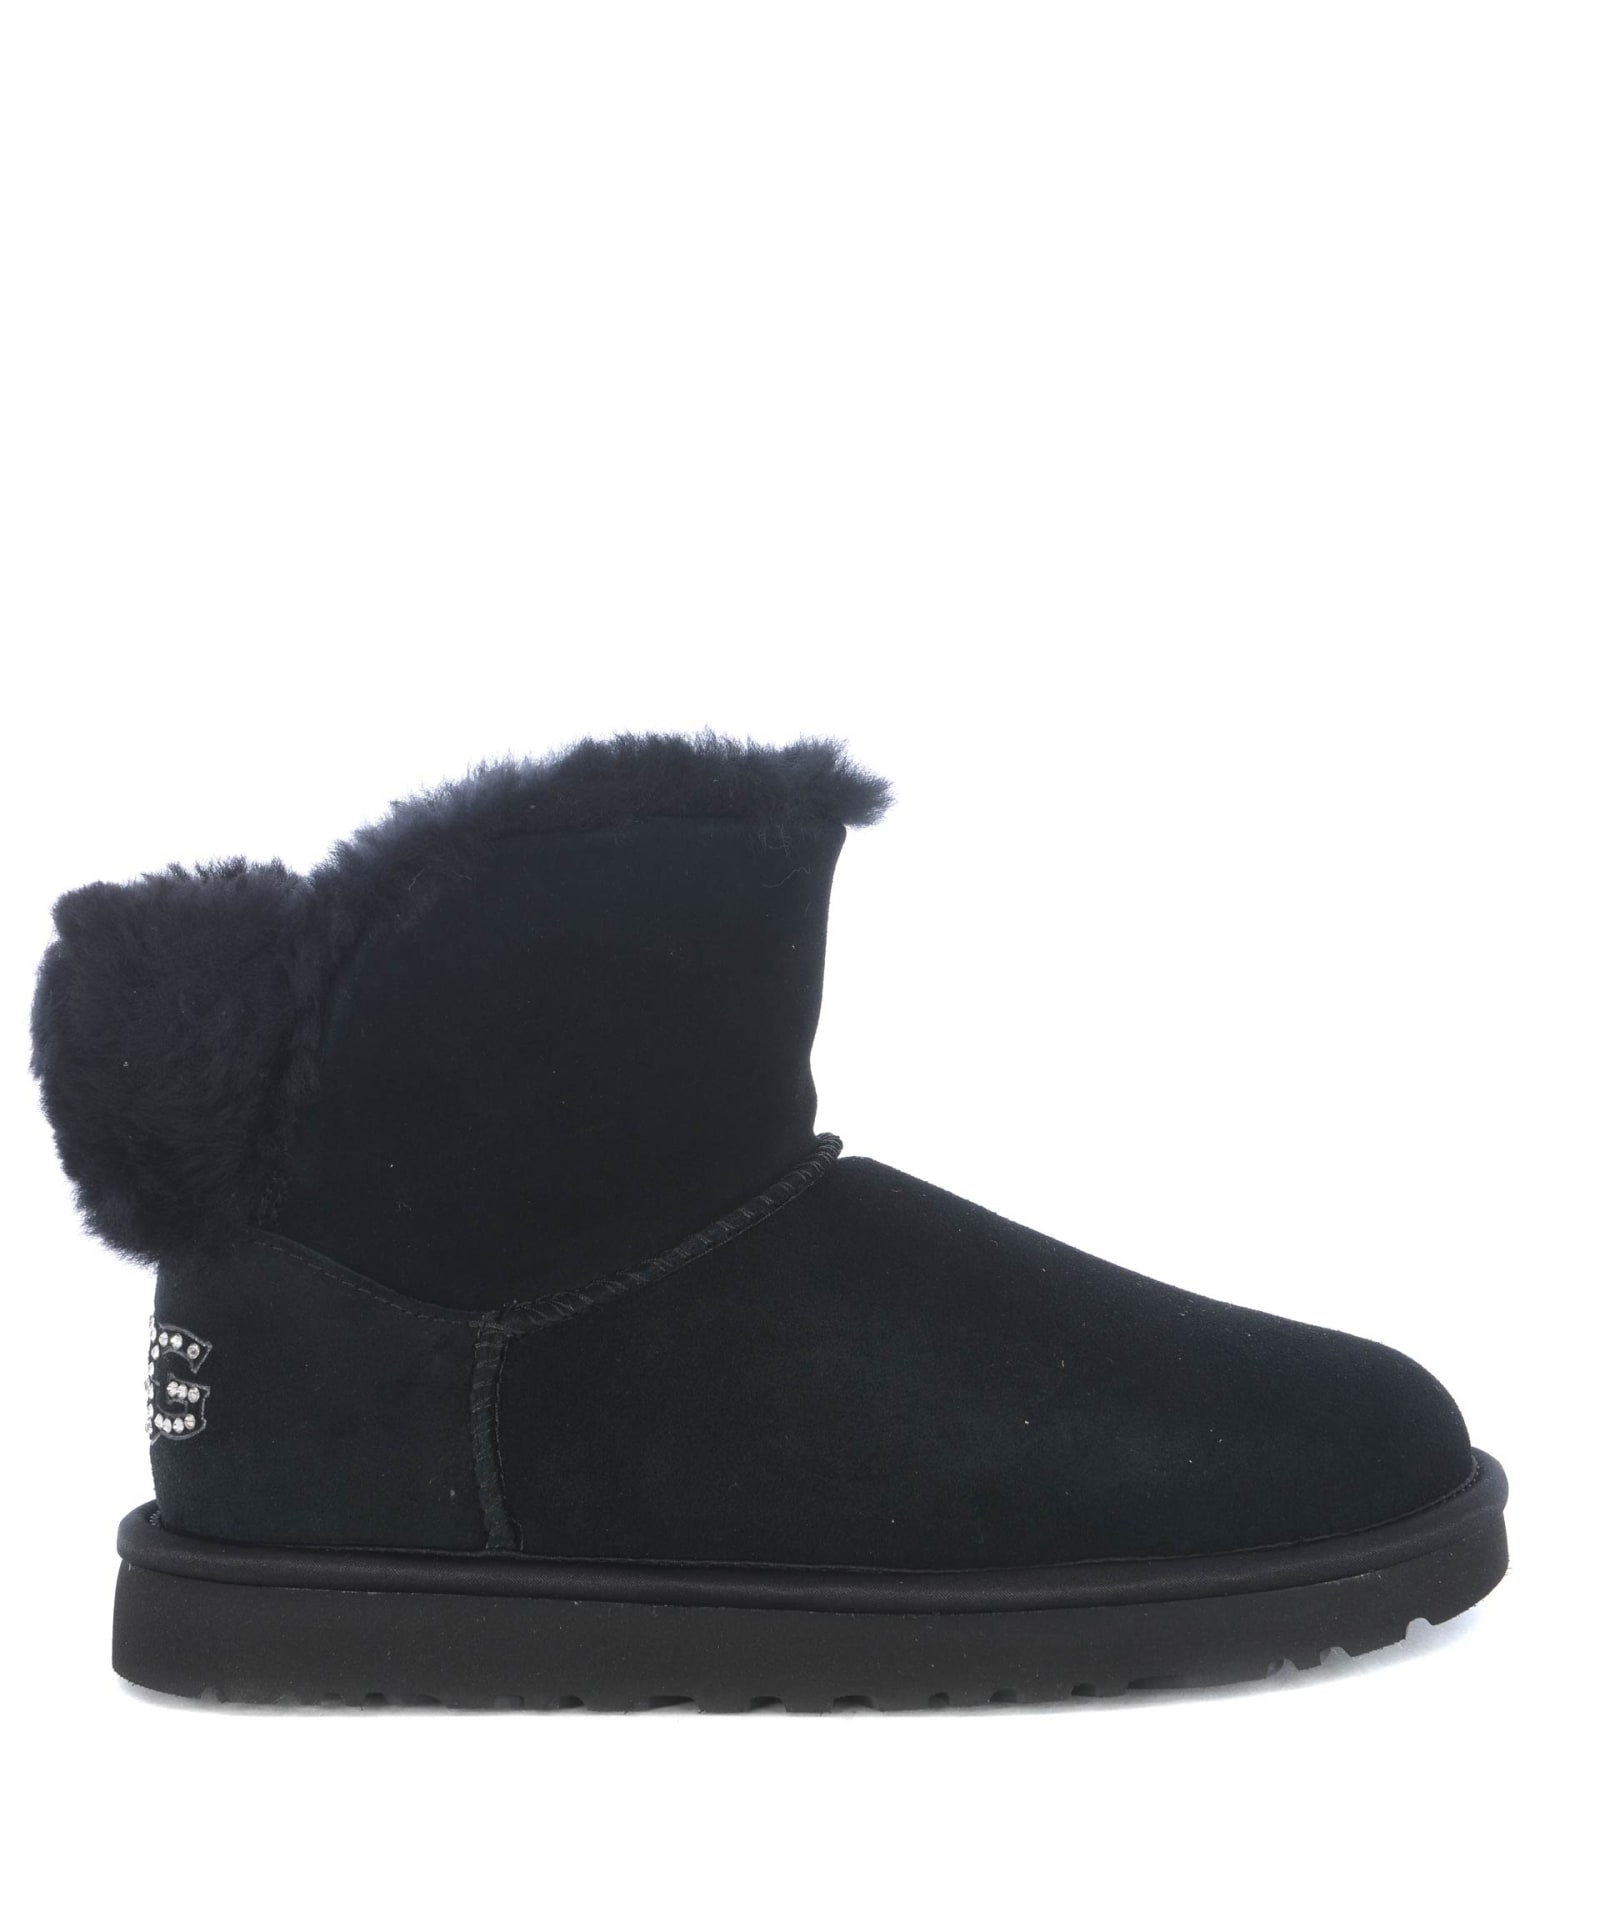 Buy UGG Boots online, shop UGG shoes with free shipping